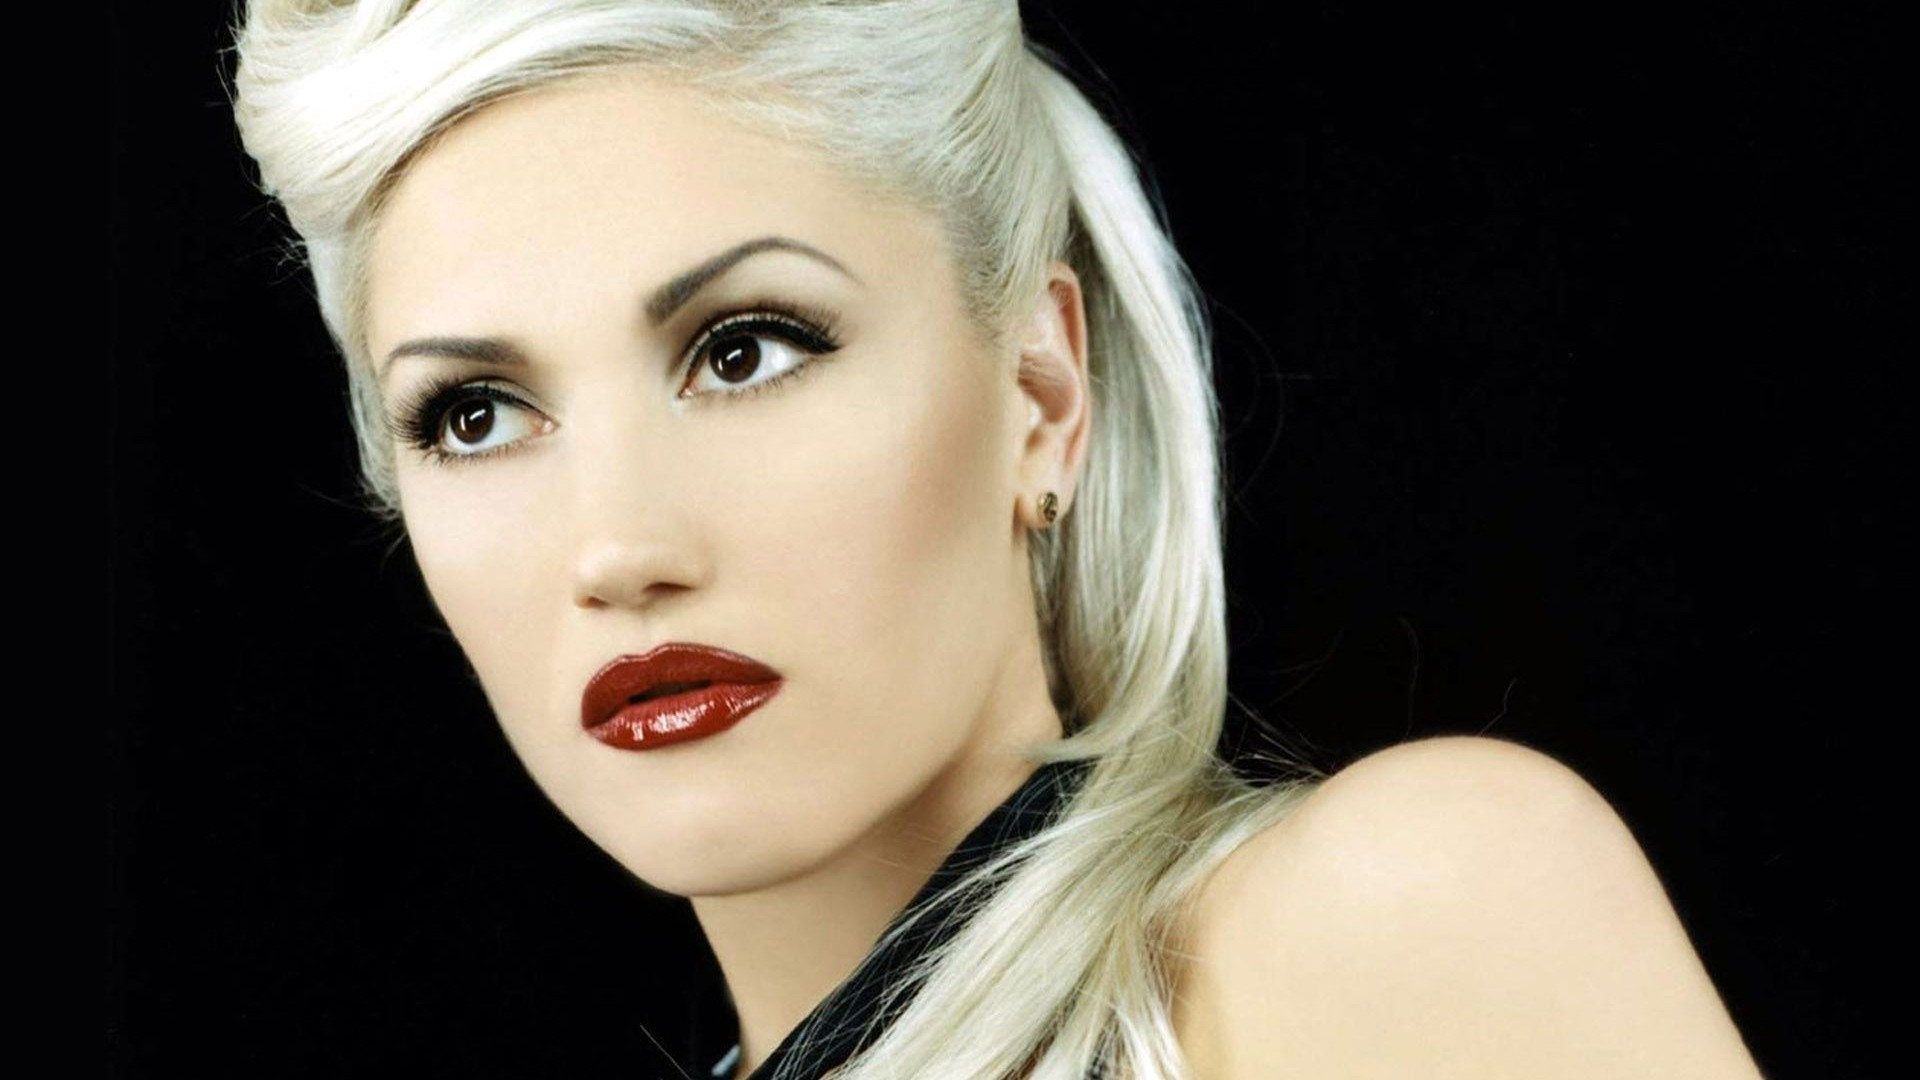 gwen stefani wallpaper cool -#main